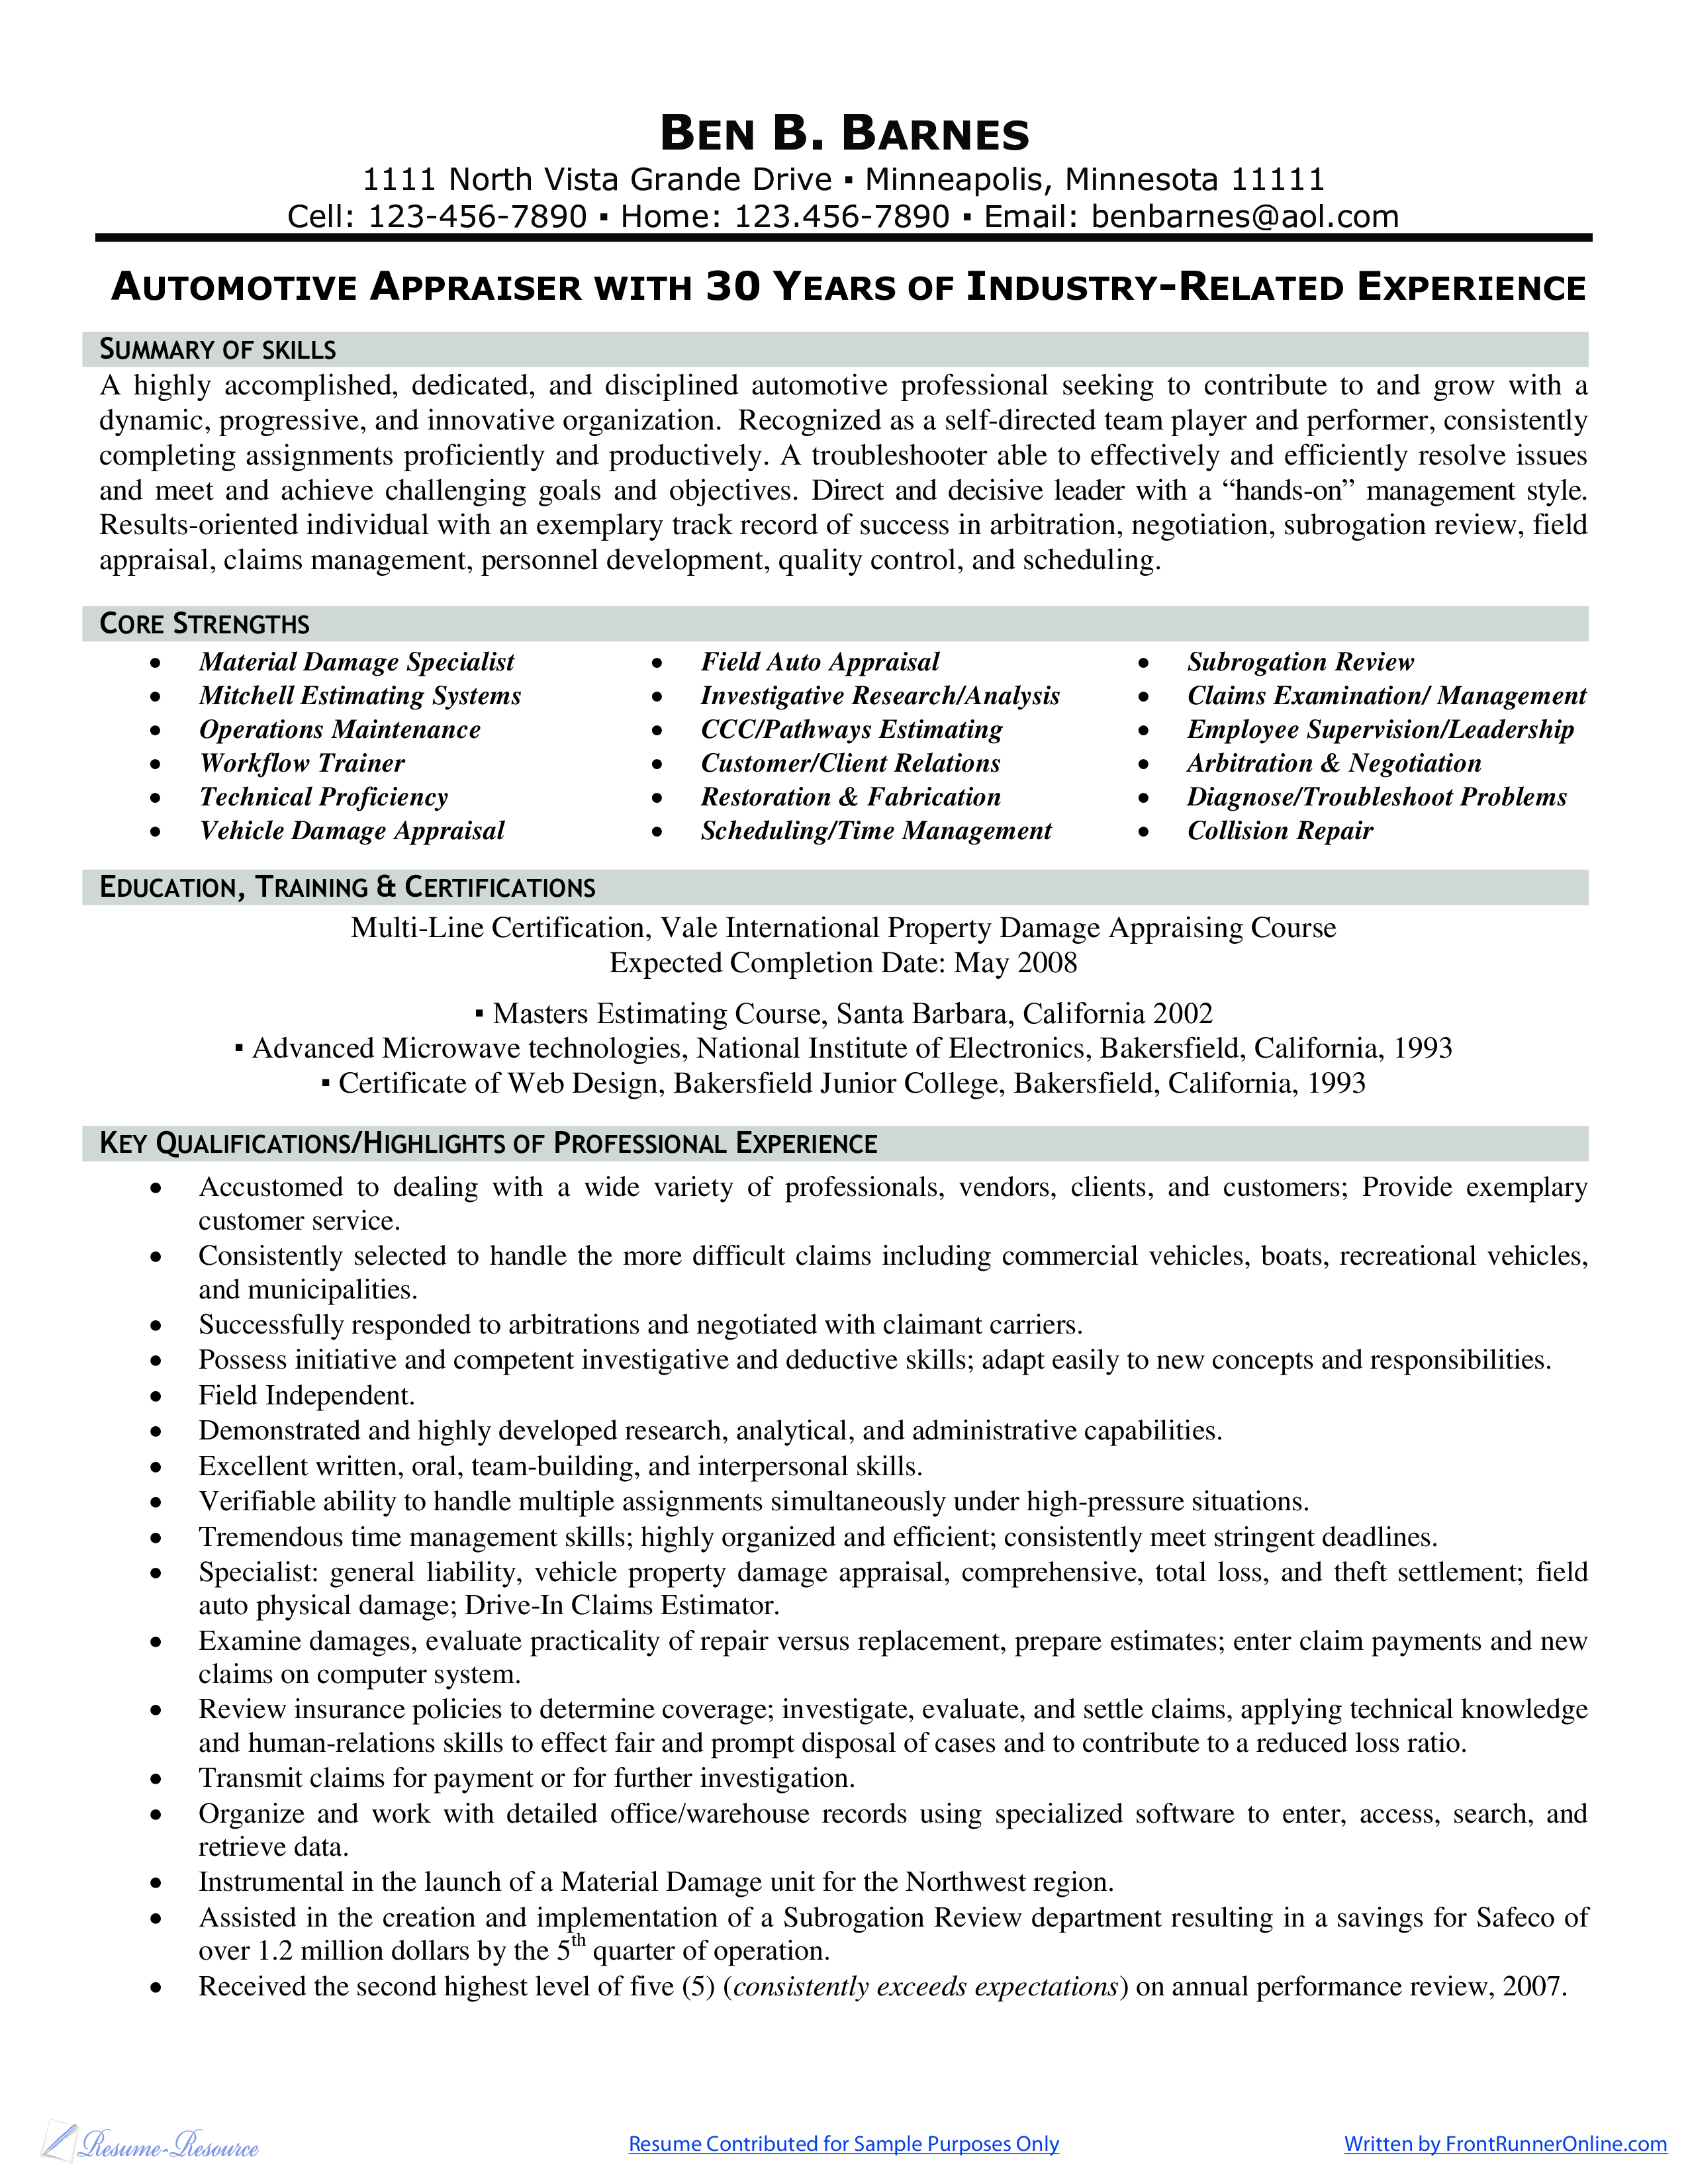 microsoft word - automotive appraiser  u0026 adjuster resume